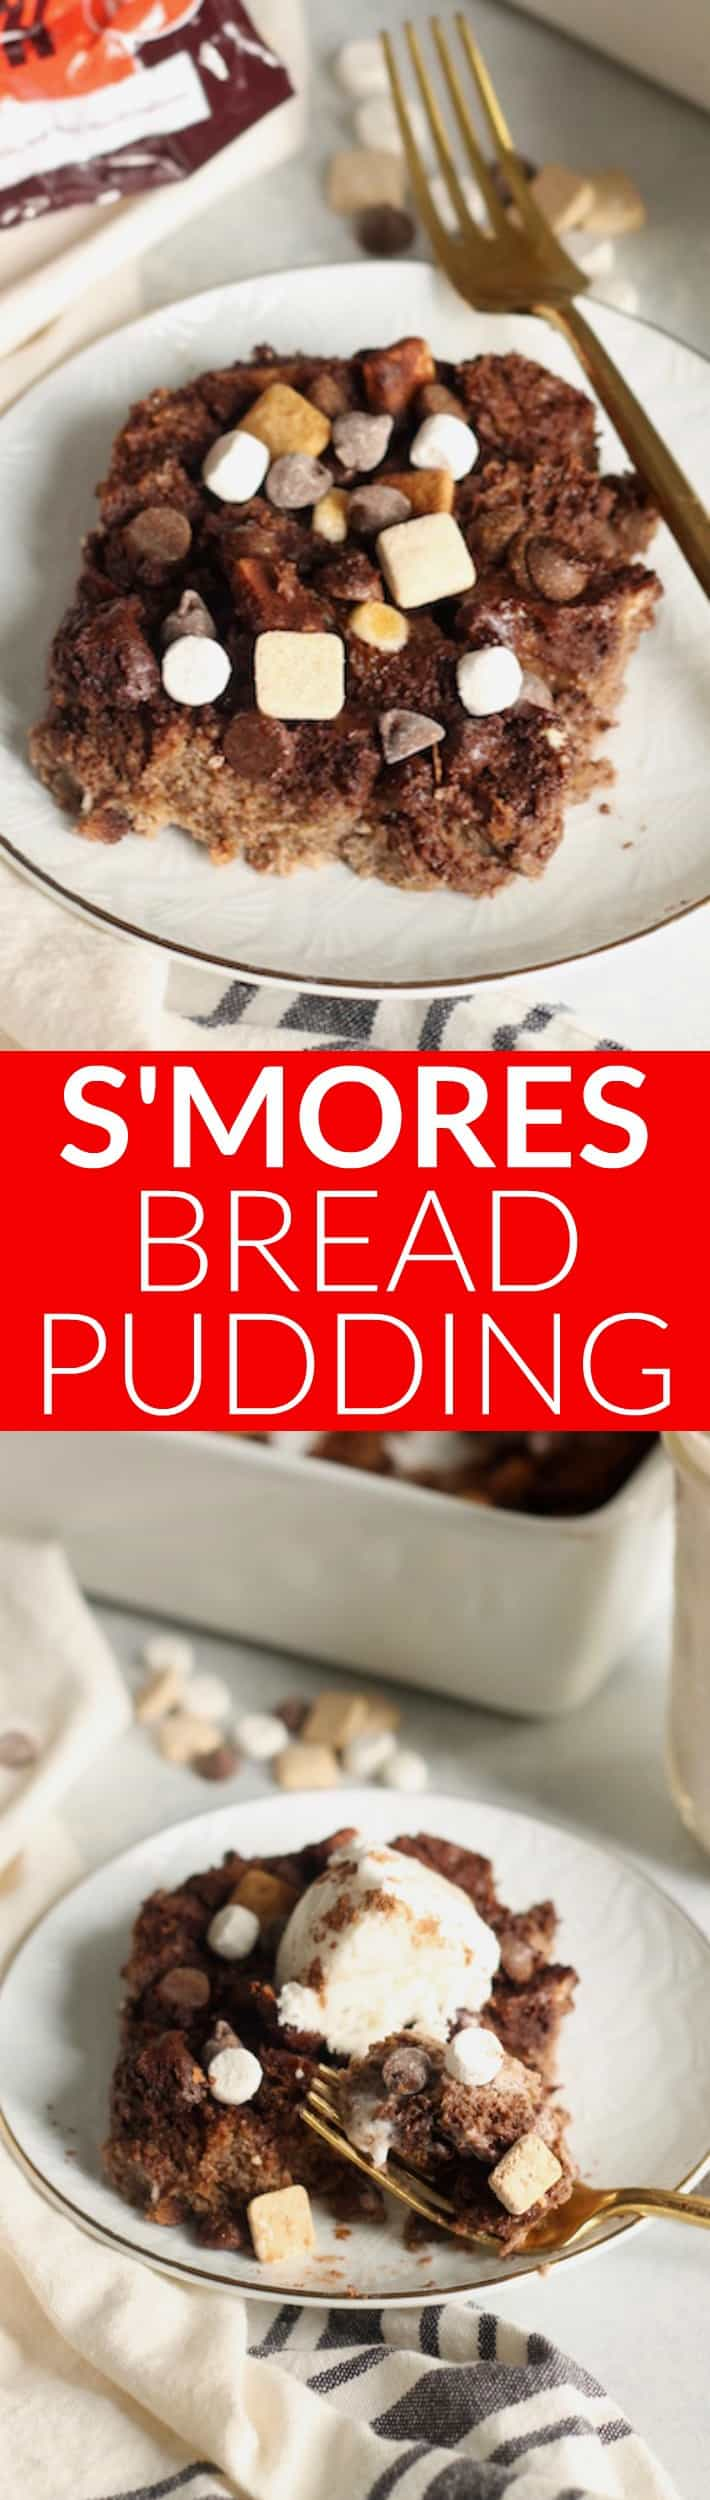 This decadent S'mores Bread Pudding uses whole grain bread, almond milk, and pure maple syrup for a unique spin on the classic. Studded with chunks of s'mores pieces, this 8-ingredient treat will quickly become a favorite!